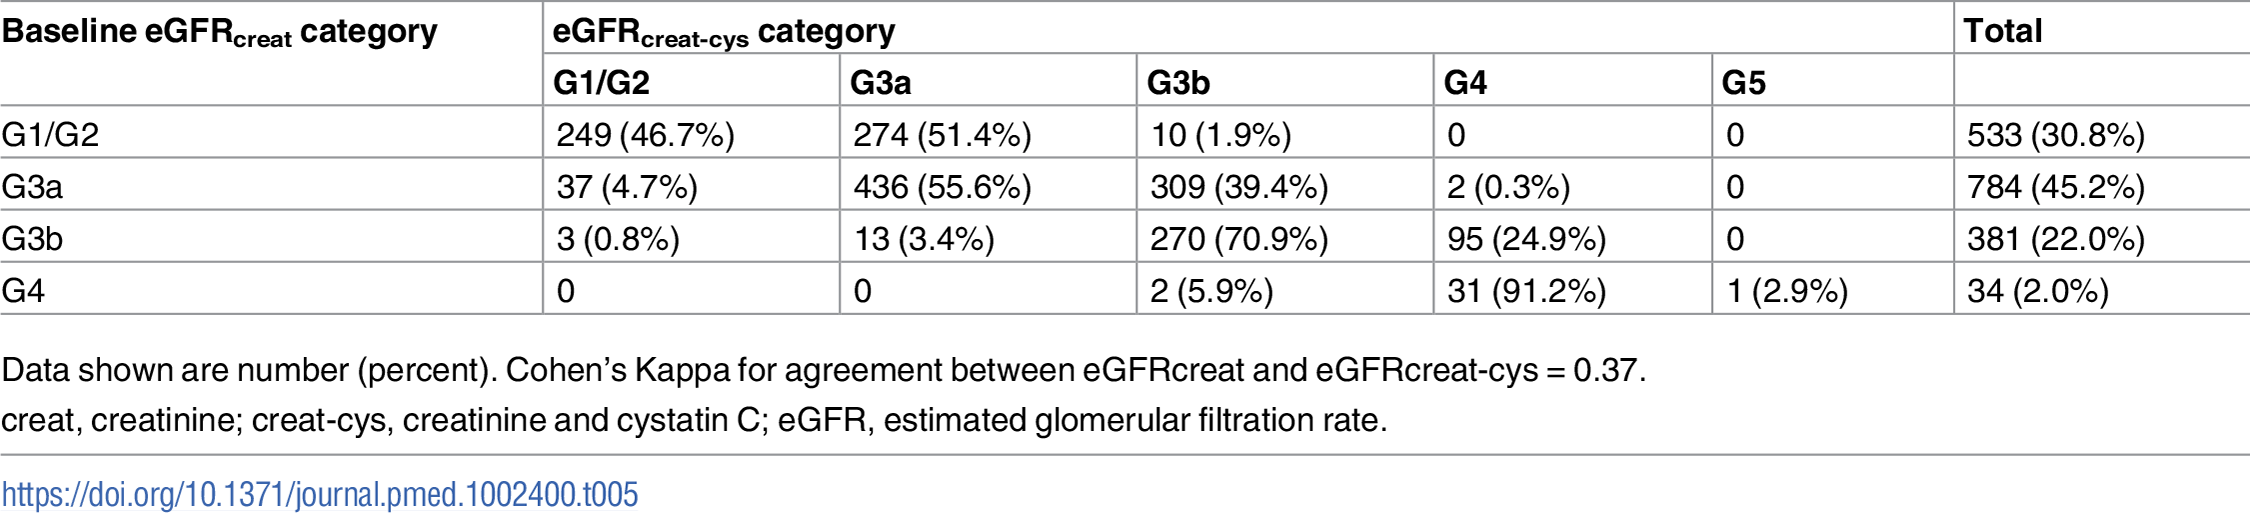 Baseline eGFRcreat category and reclassification using eGFRcreat-cys in all study participants.